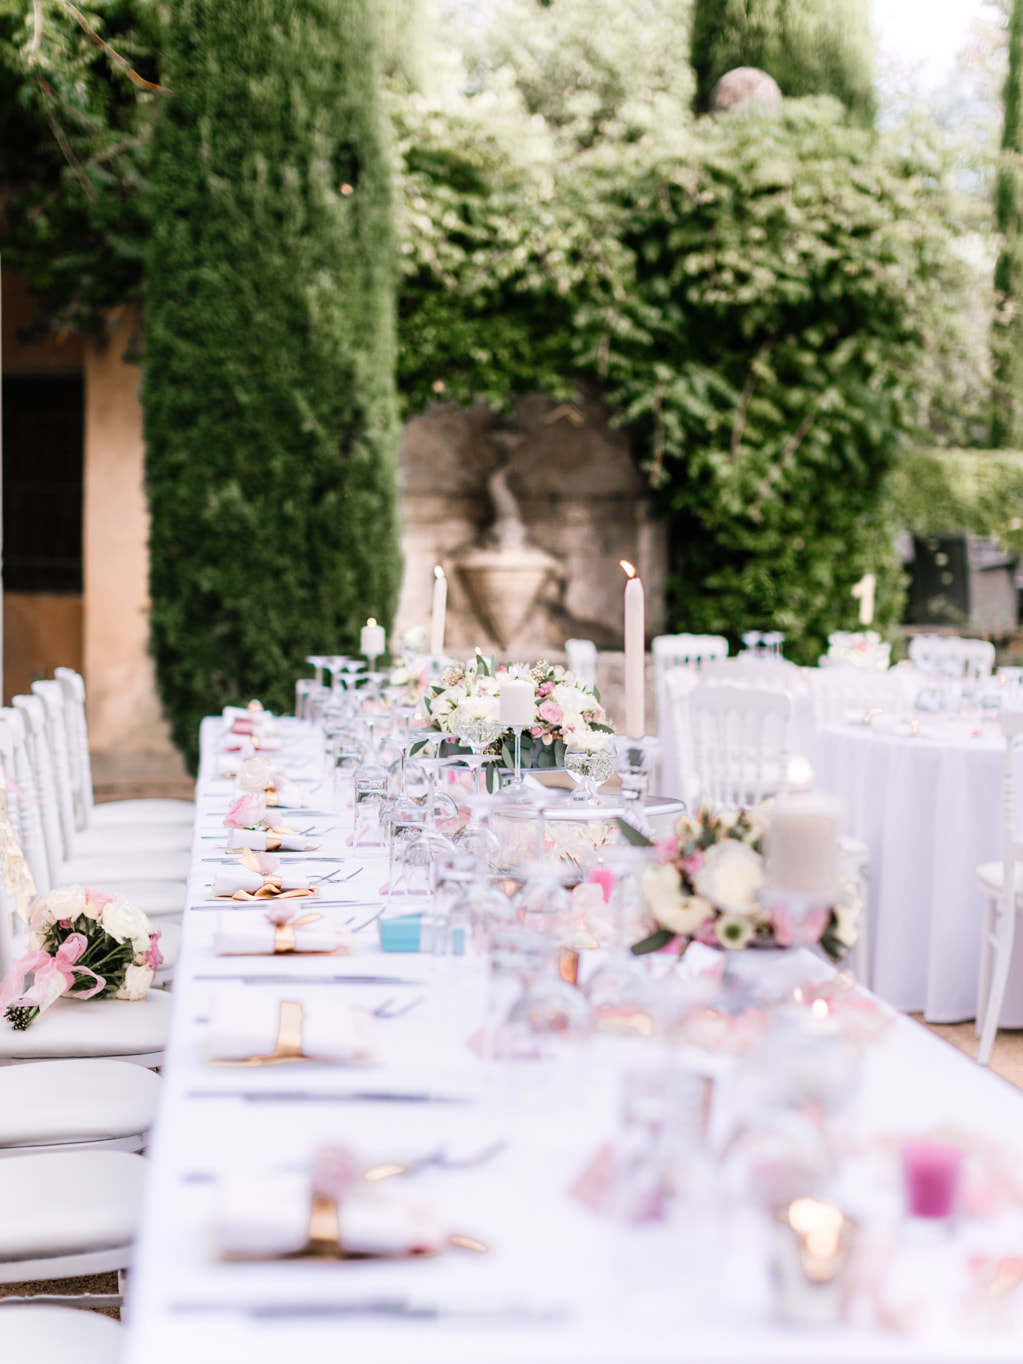 How To Have An Amazing Wedding On A Budget by The Belle Blog